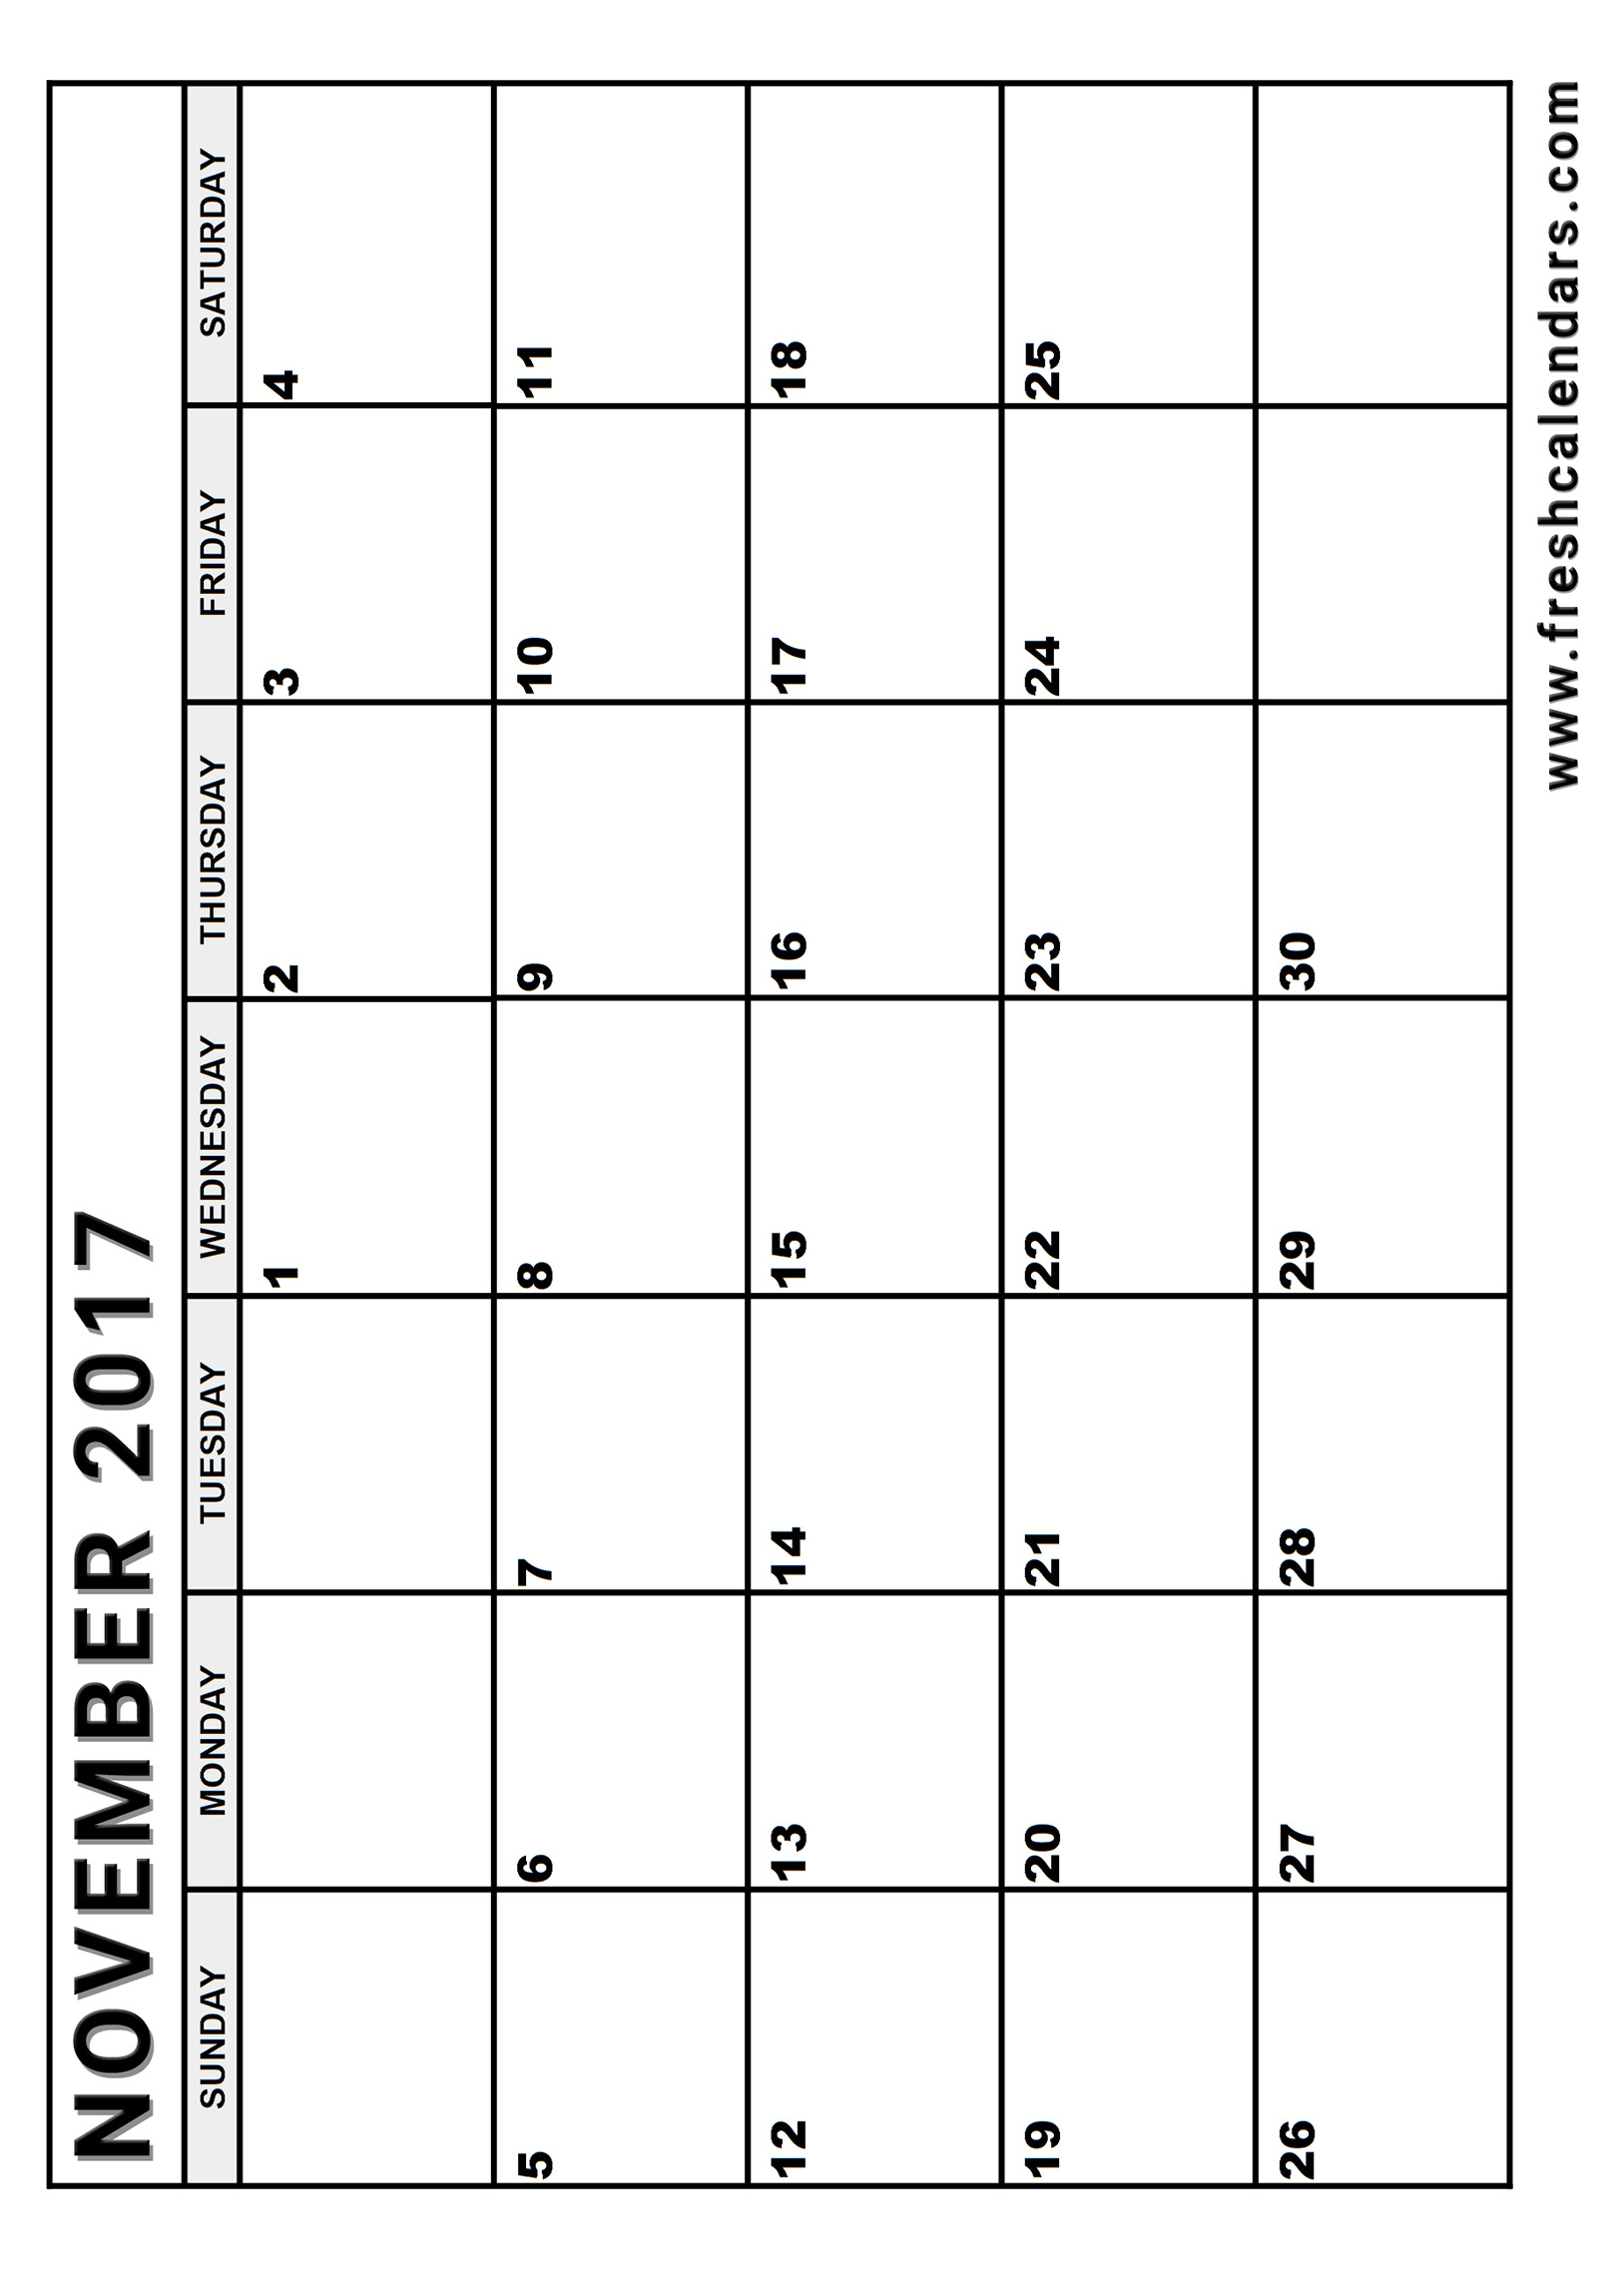 photo relating to Calendars Free Printable titled November 2017 Calendar Printable Templates